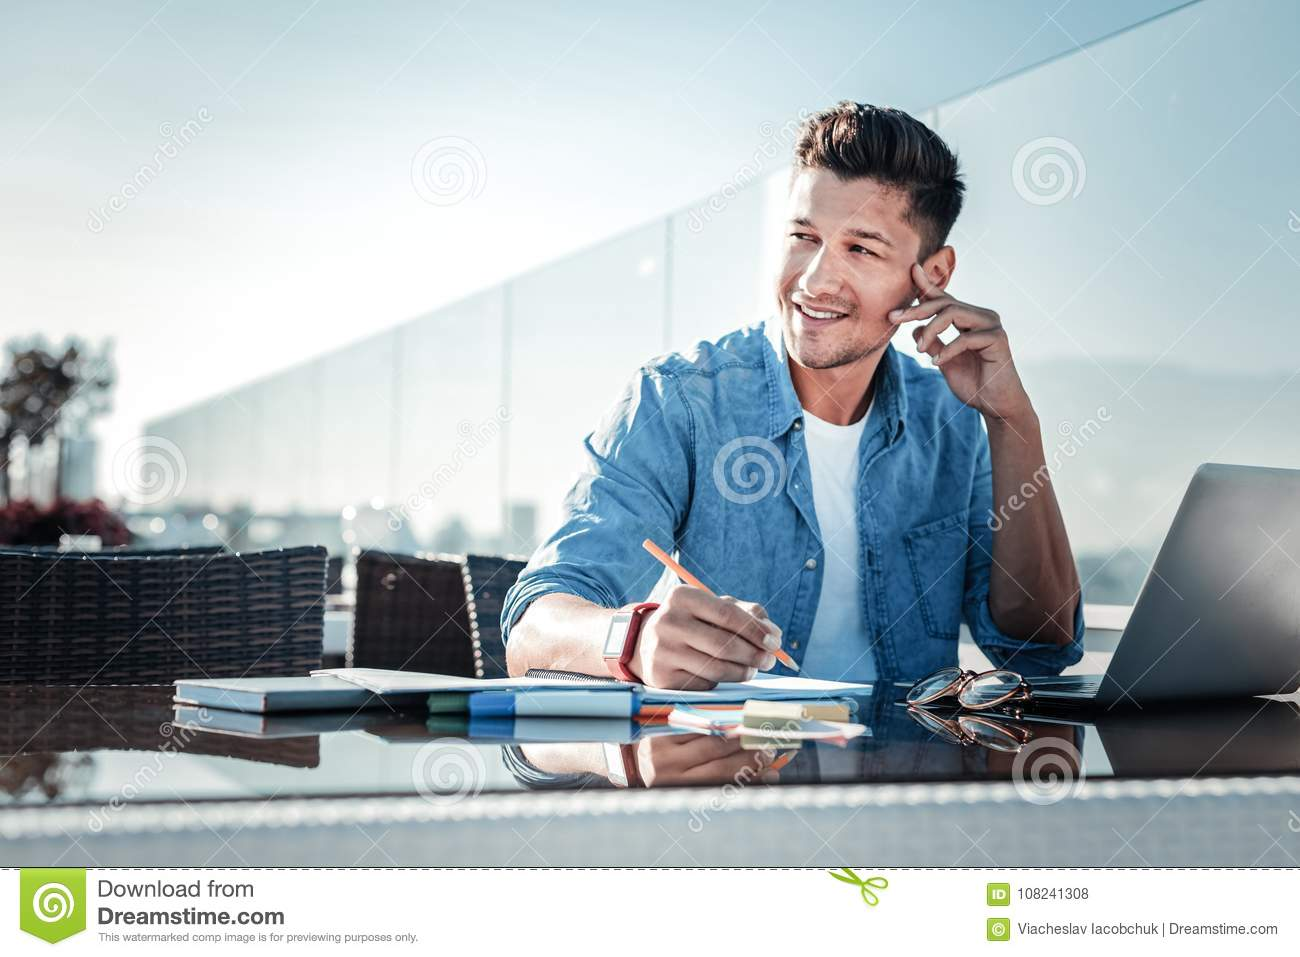 Pensive young gentleman smiling while working on laptop outdoors